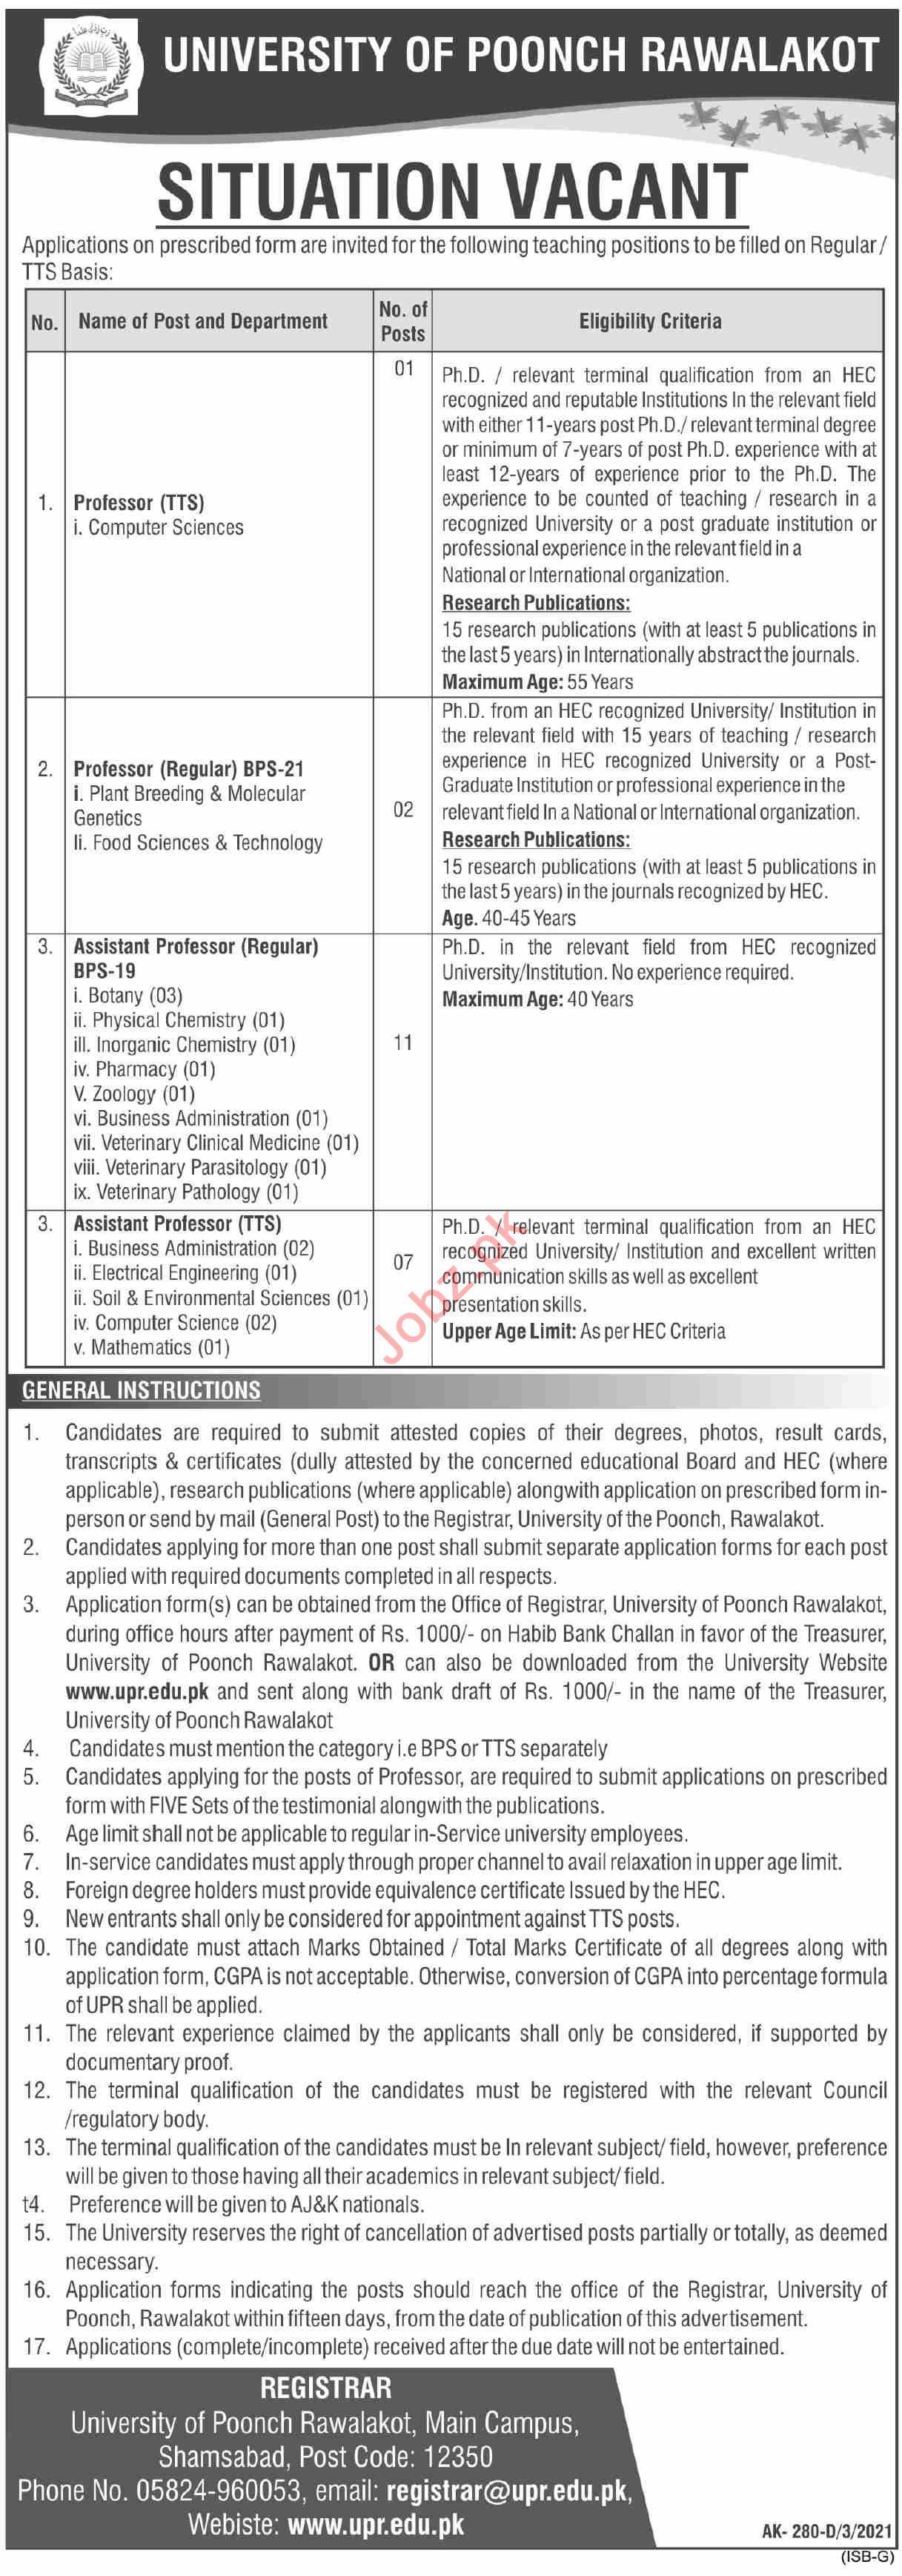 University of Poonch Rawalakot UPR Jobs 2021 for Professors